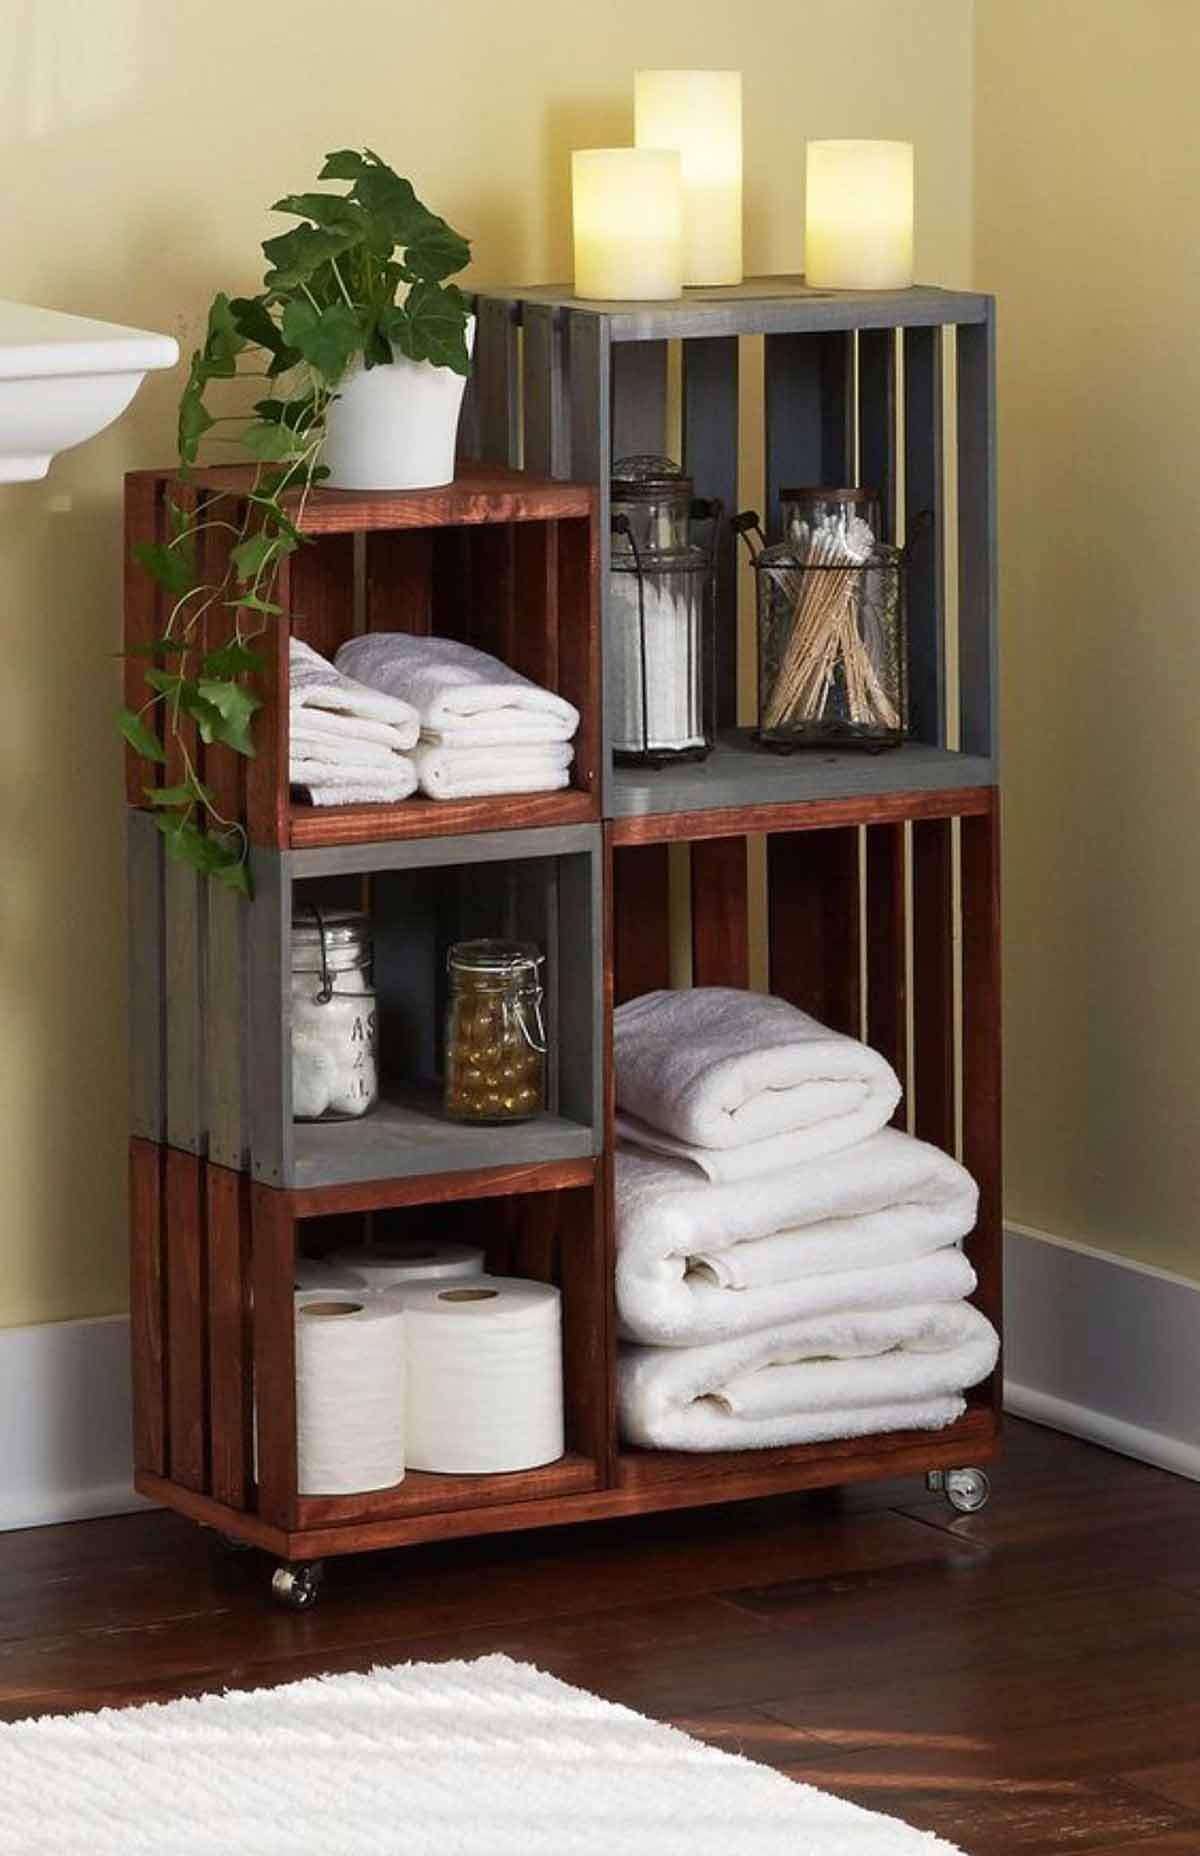 Alte Ikea Regale Stylishly Stackable Pallet Project Ideas Crafts Projects Diy